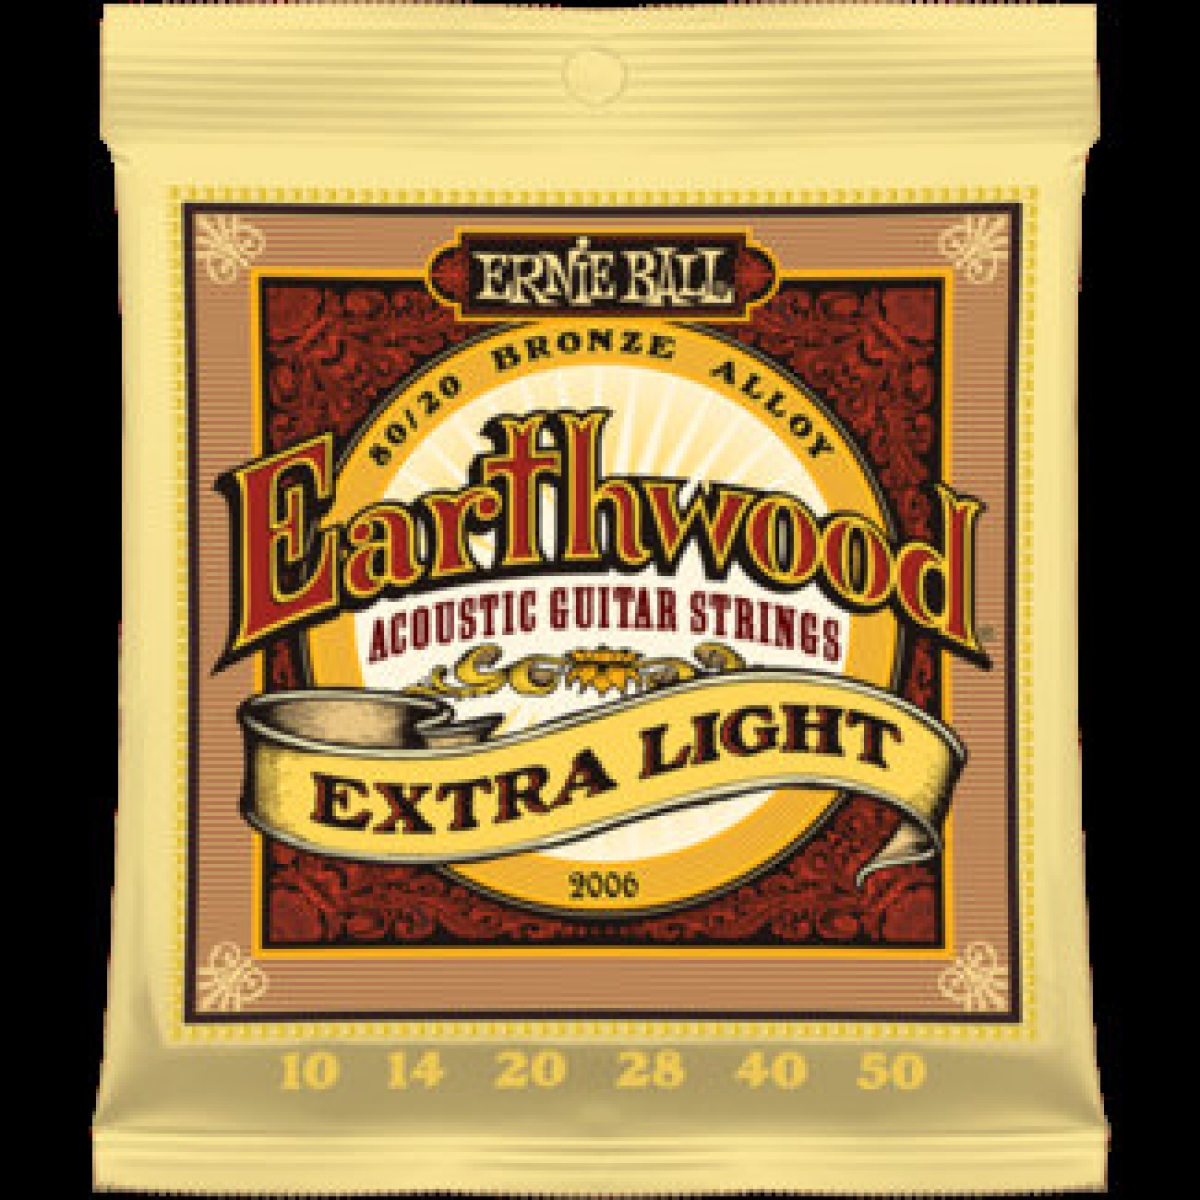 3 sets of ernie ball earthwood 2006 acoustic guitar strings 10 50 at promenade music. Black Bedroom Furniture Sets. Home Design Ideas